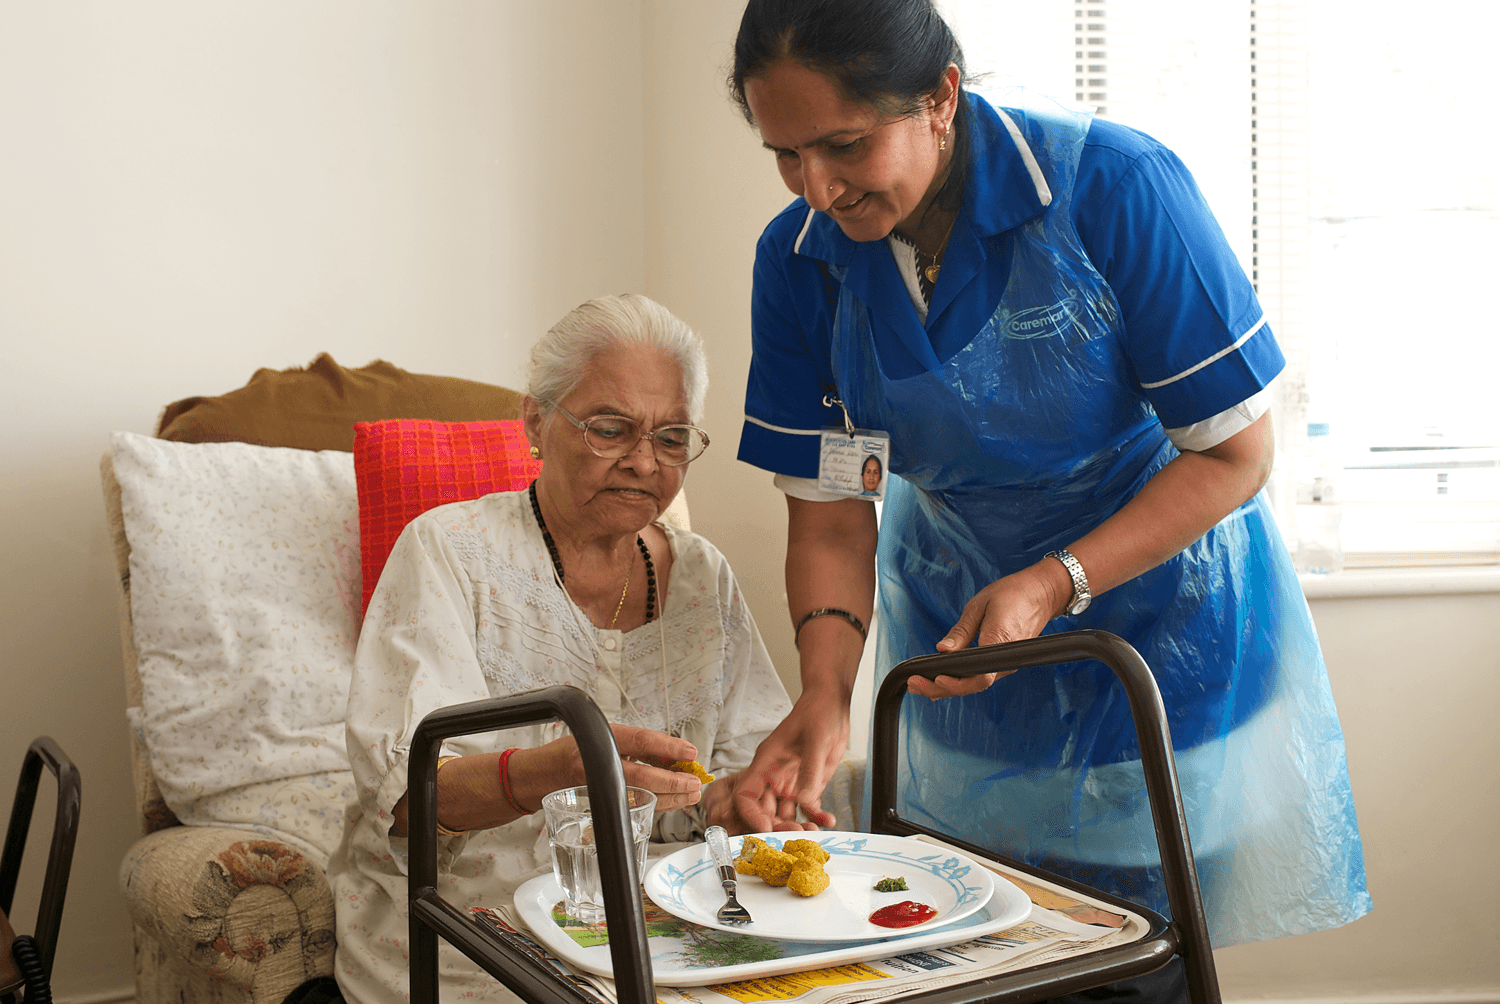 Caremark meal preparation with home care worker